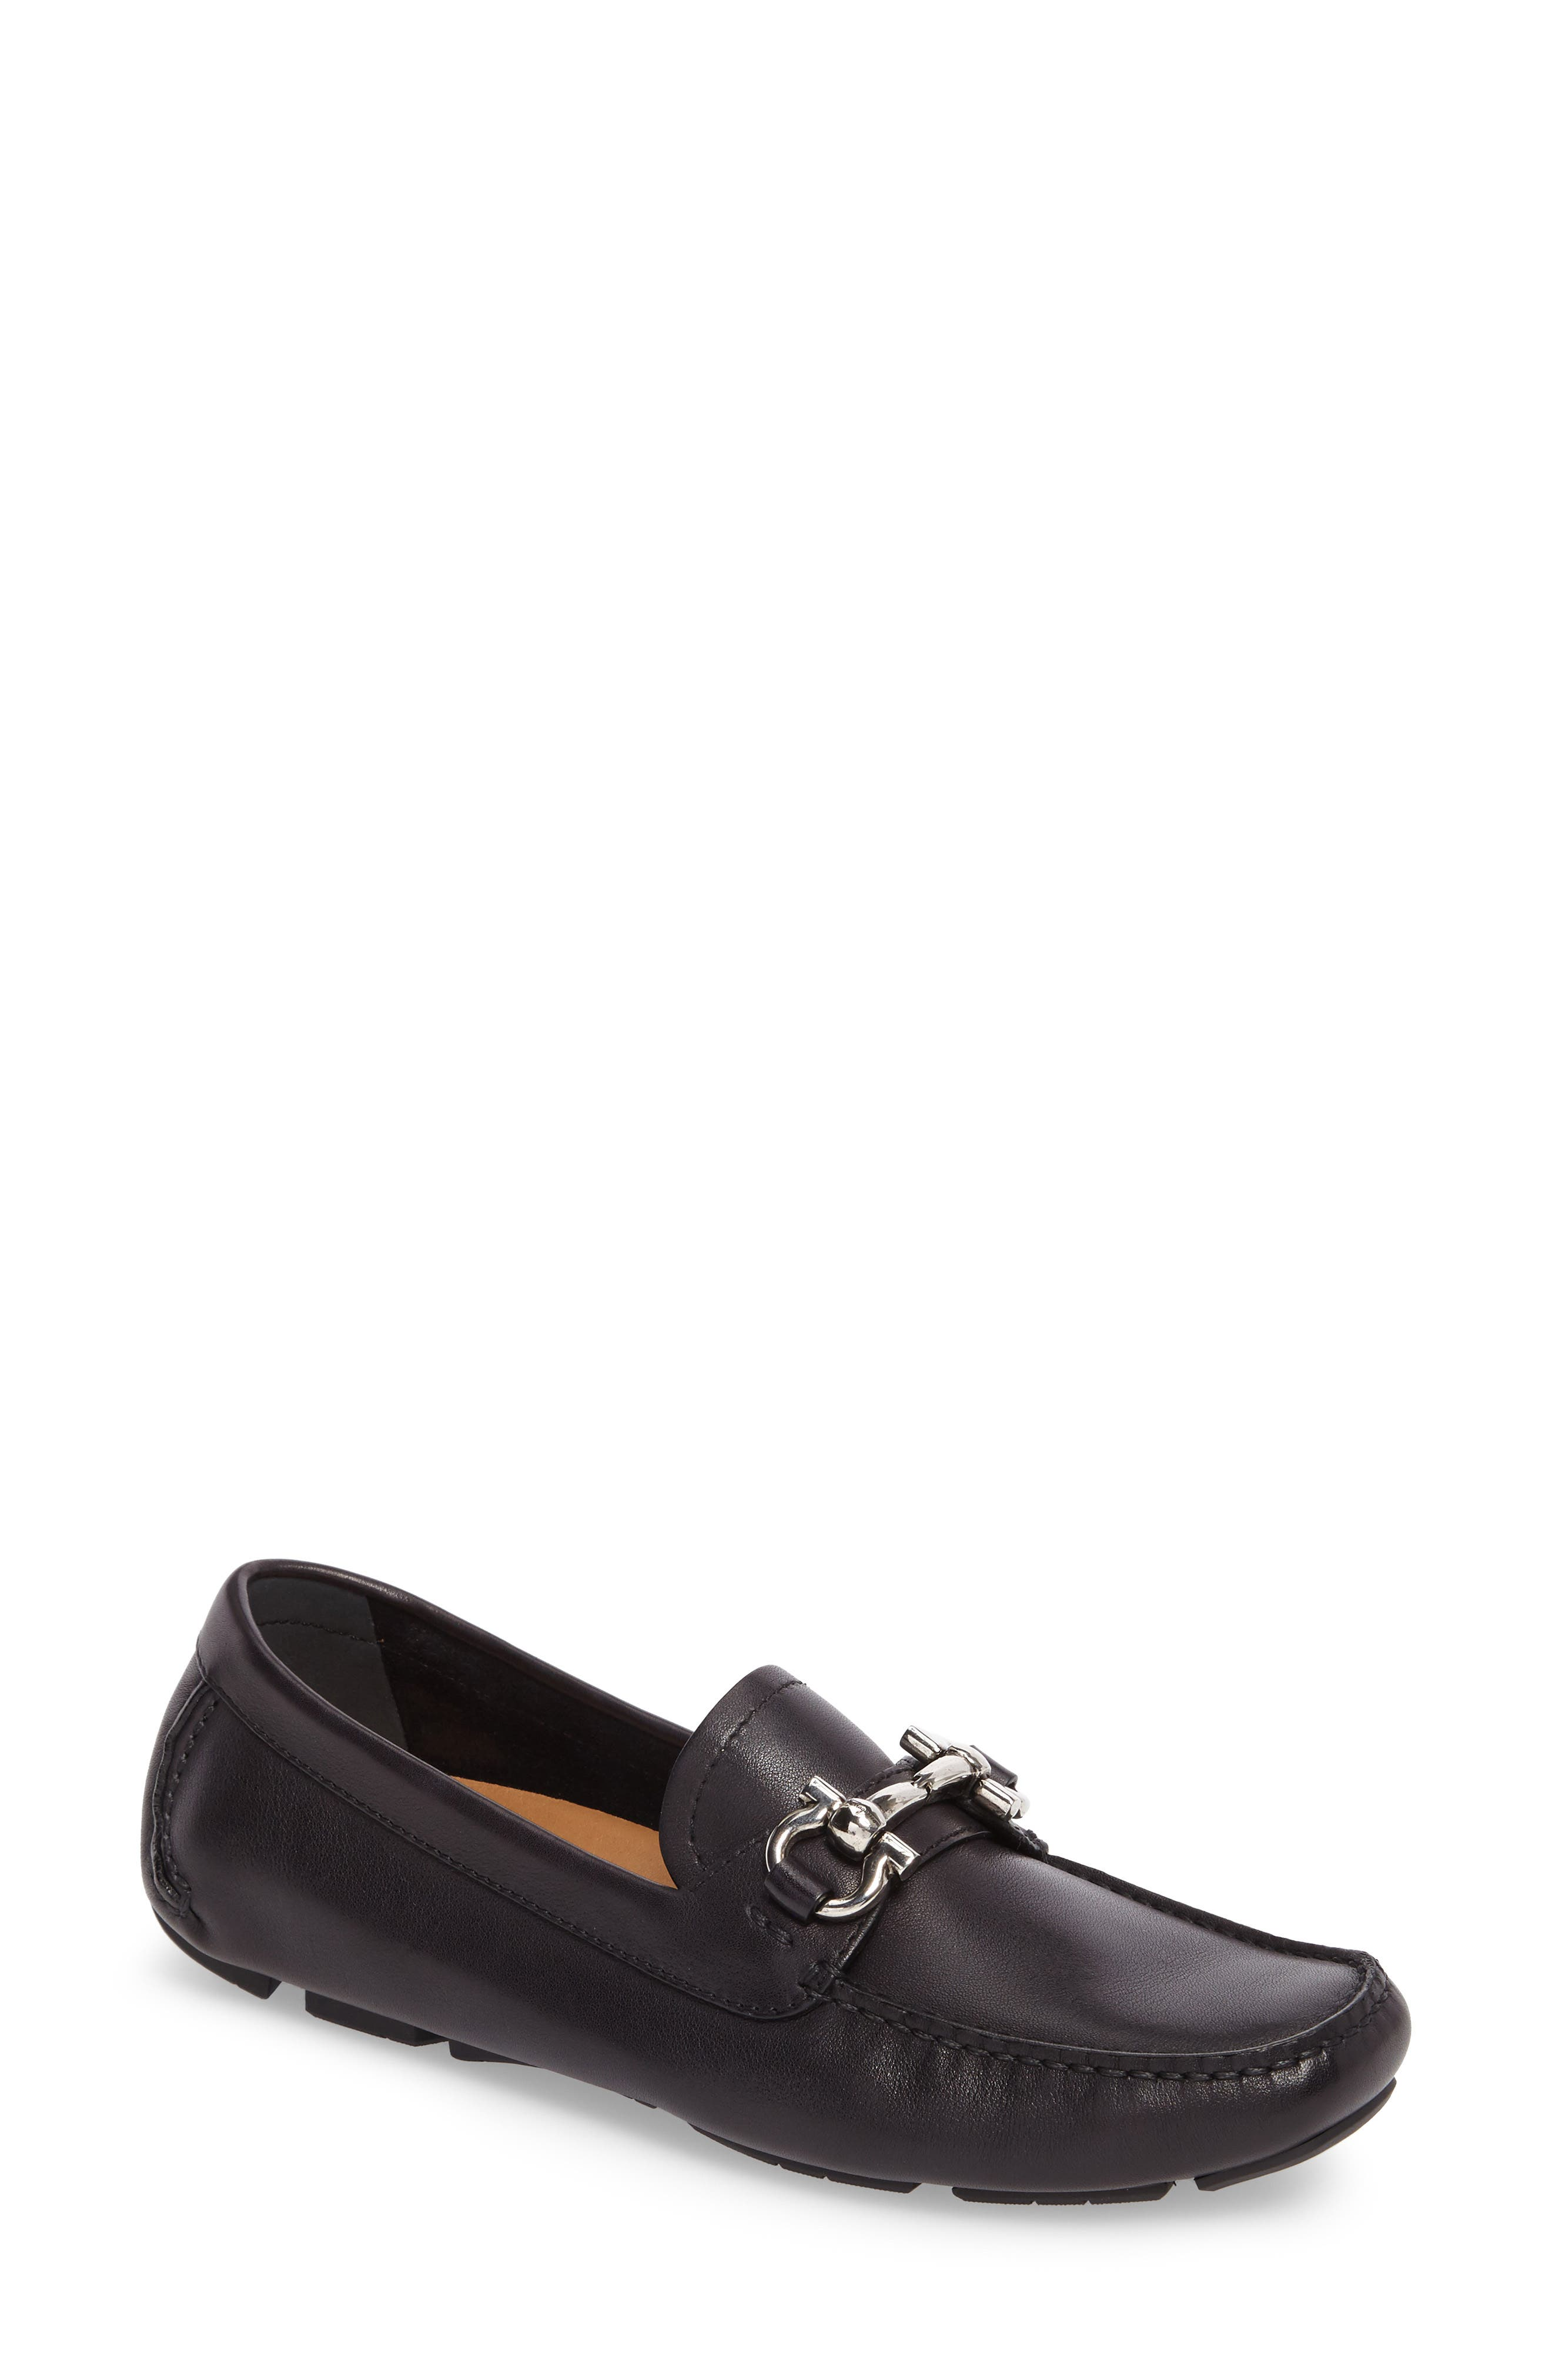 Parigi Loafer,                             Alternate thumbnail 4, color,